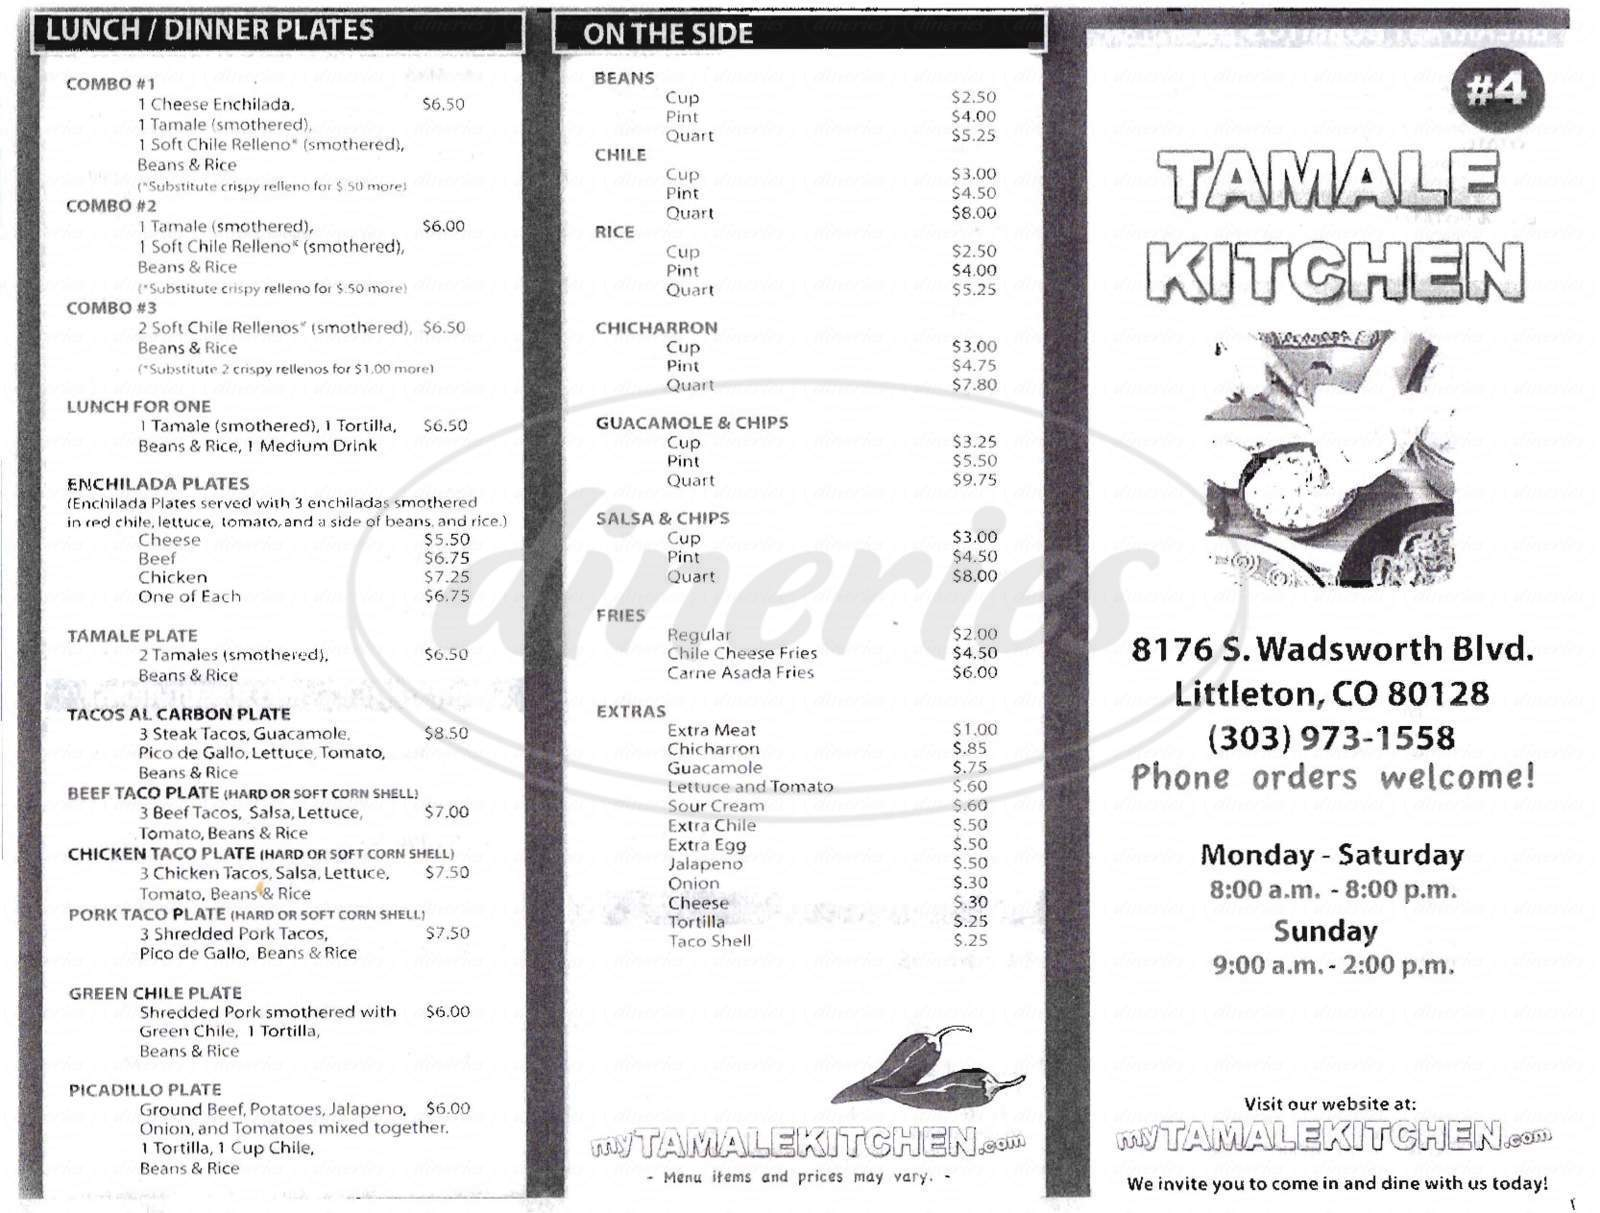 menu for Tamale Kitchen